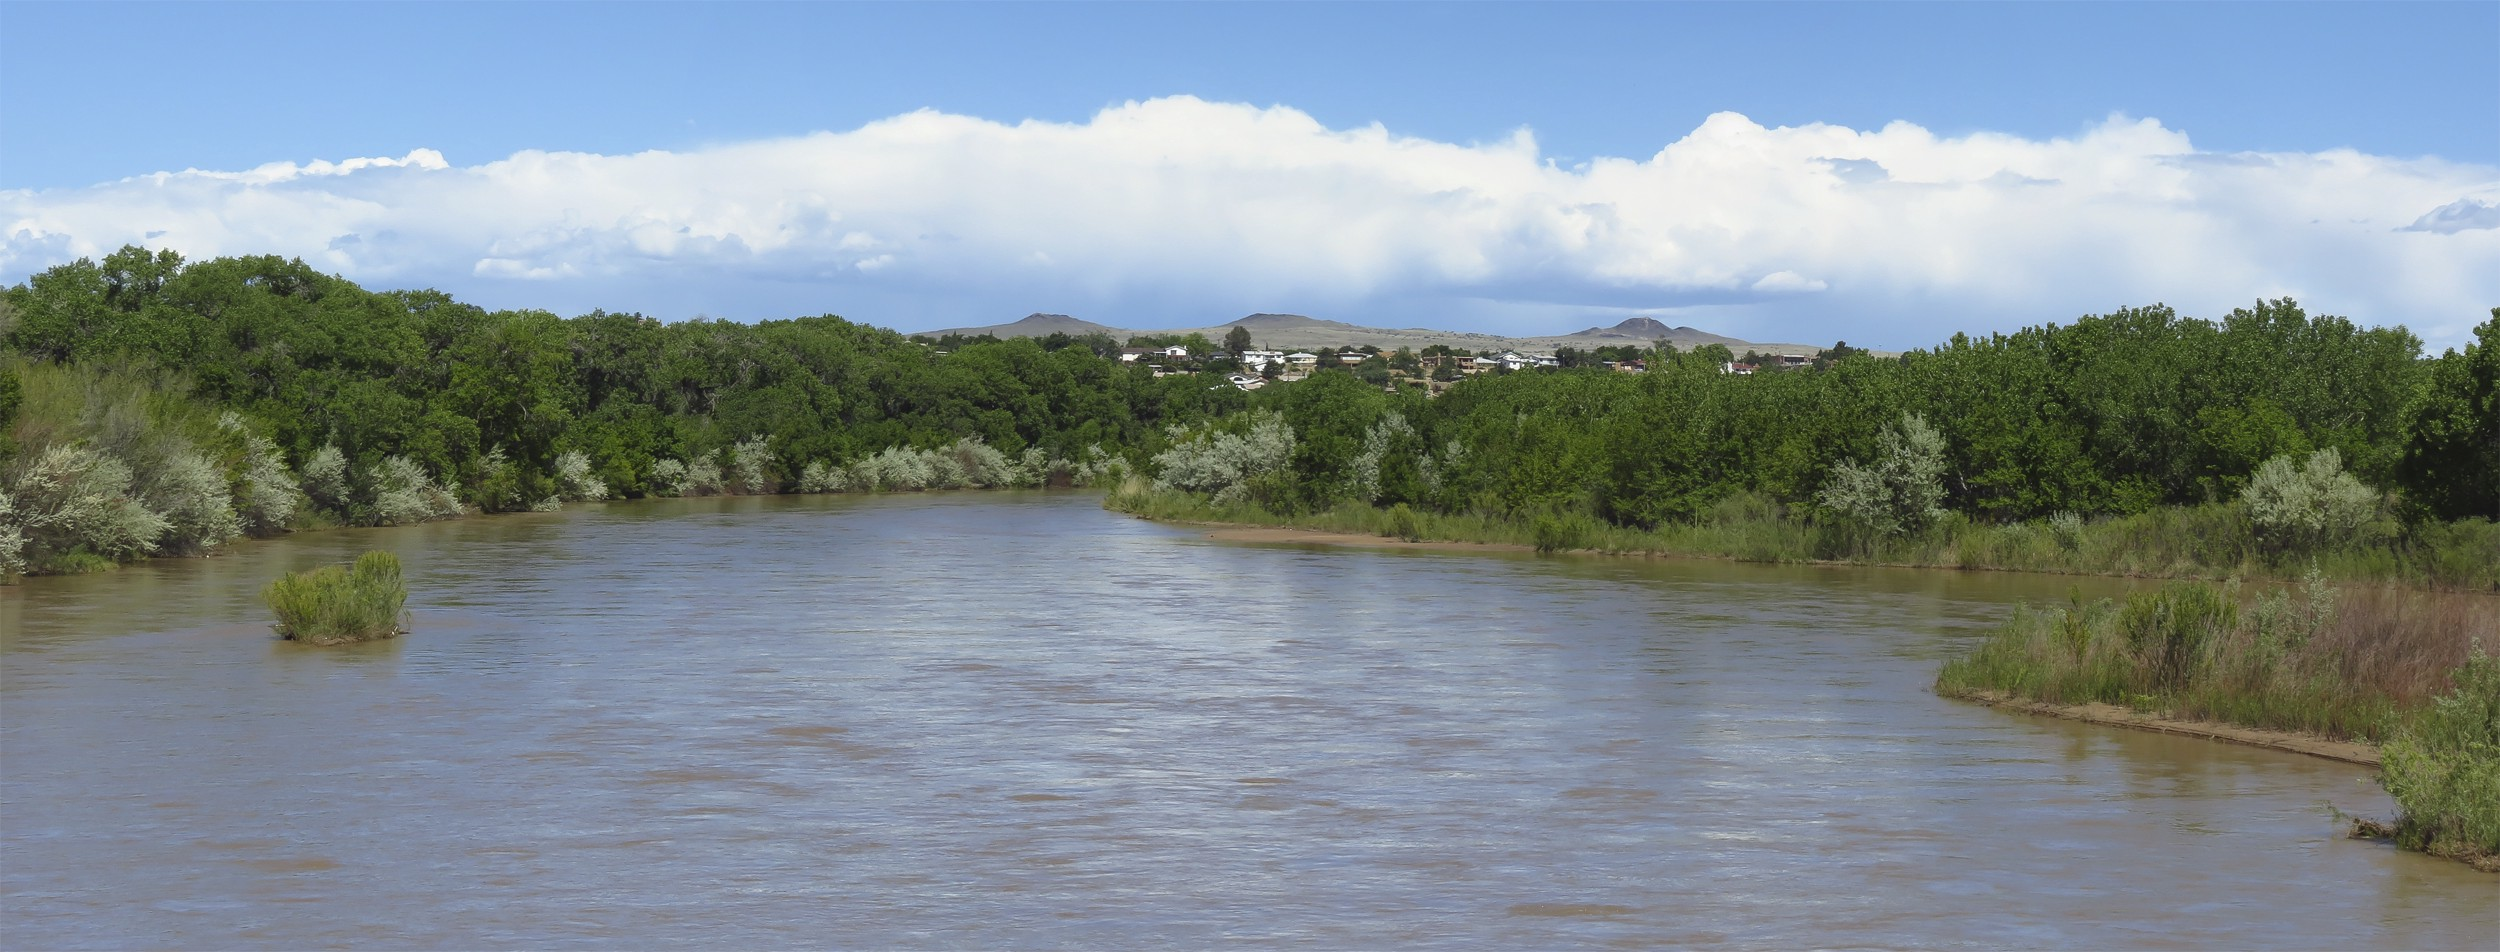 The Rio Grande with extinct volcanoes in the distance.